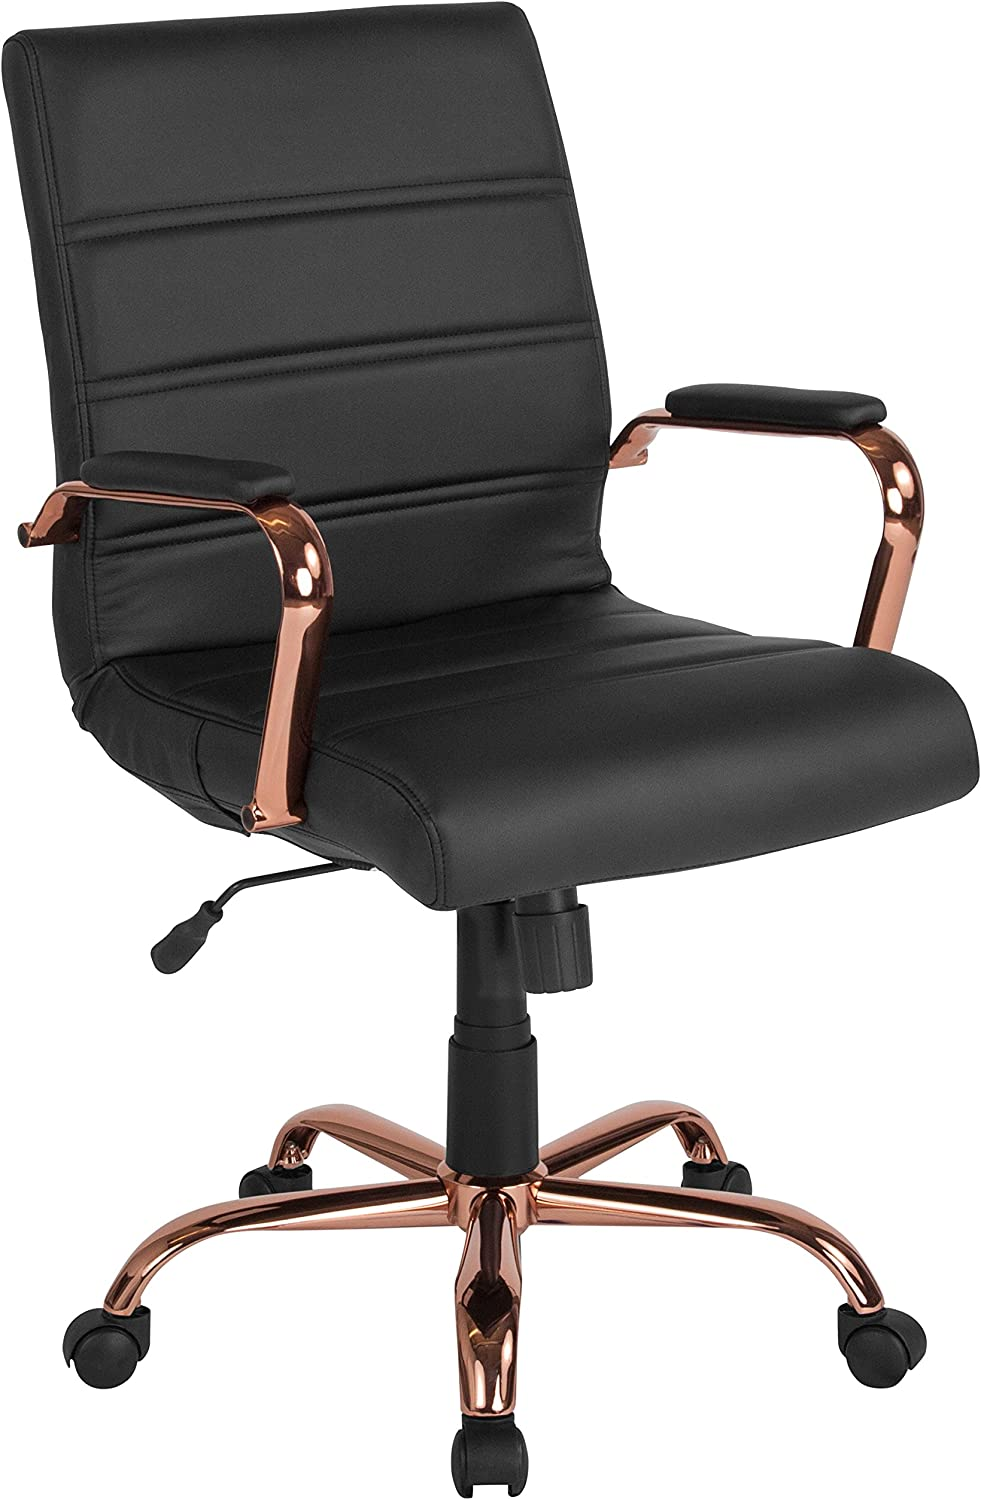 BIFMA Certified Flash Furniture Mid-Back White LeatherSoft Executive Swivel Office Chair with Chrome Base and Arms